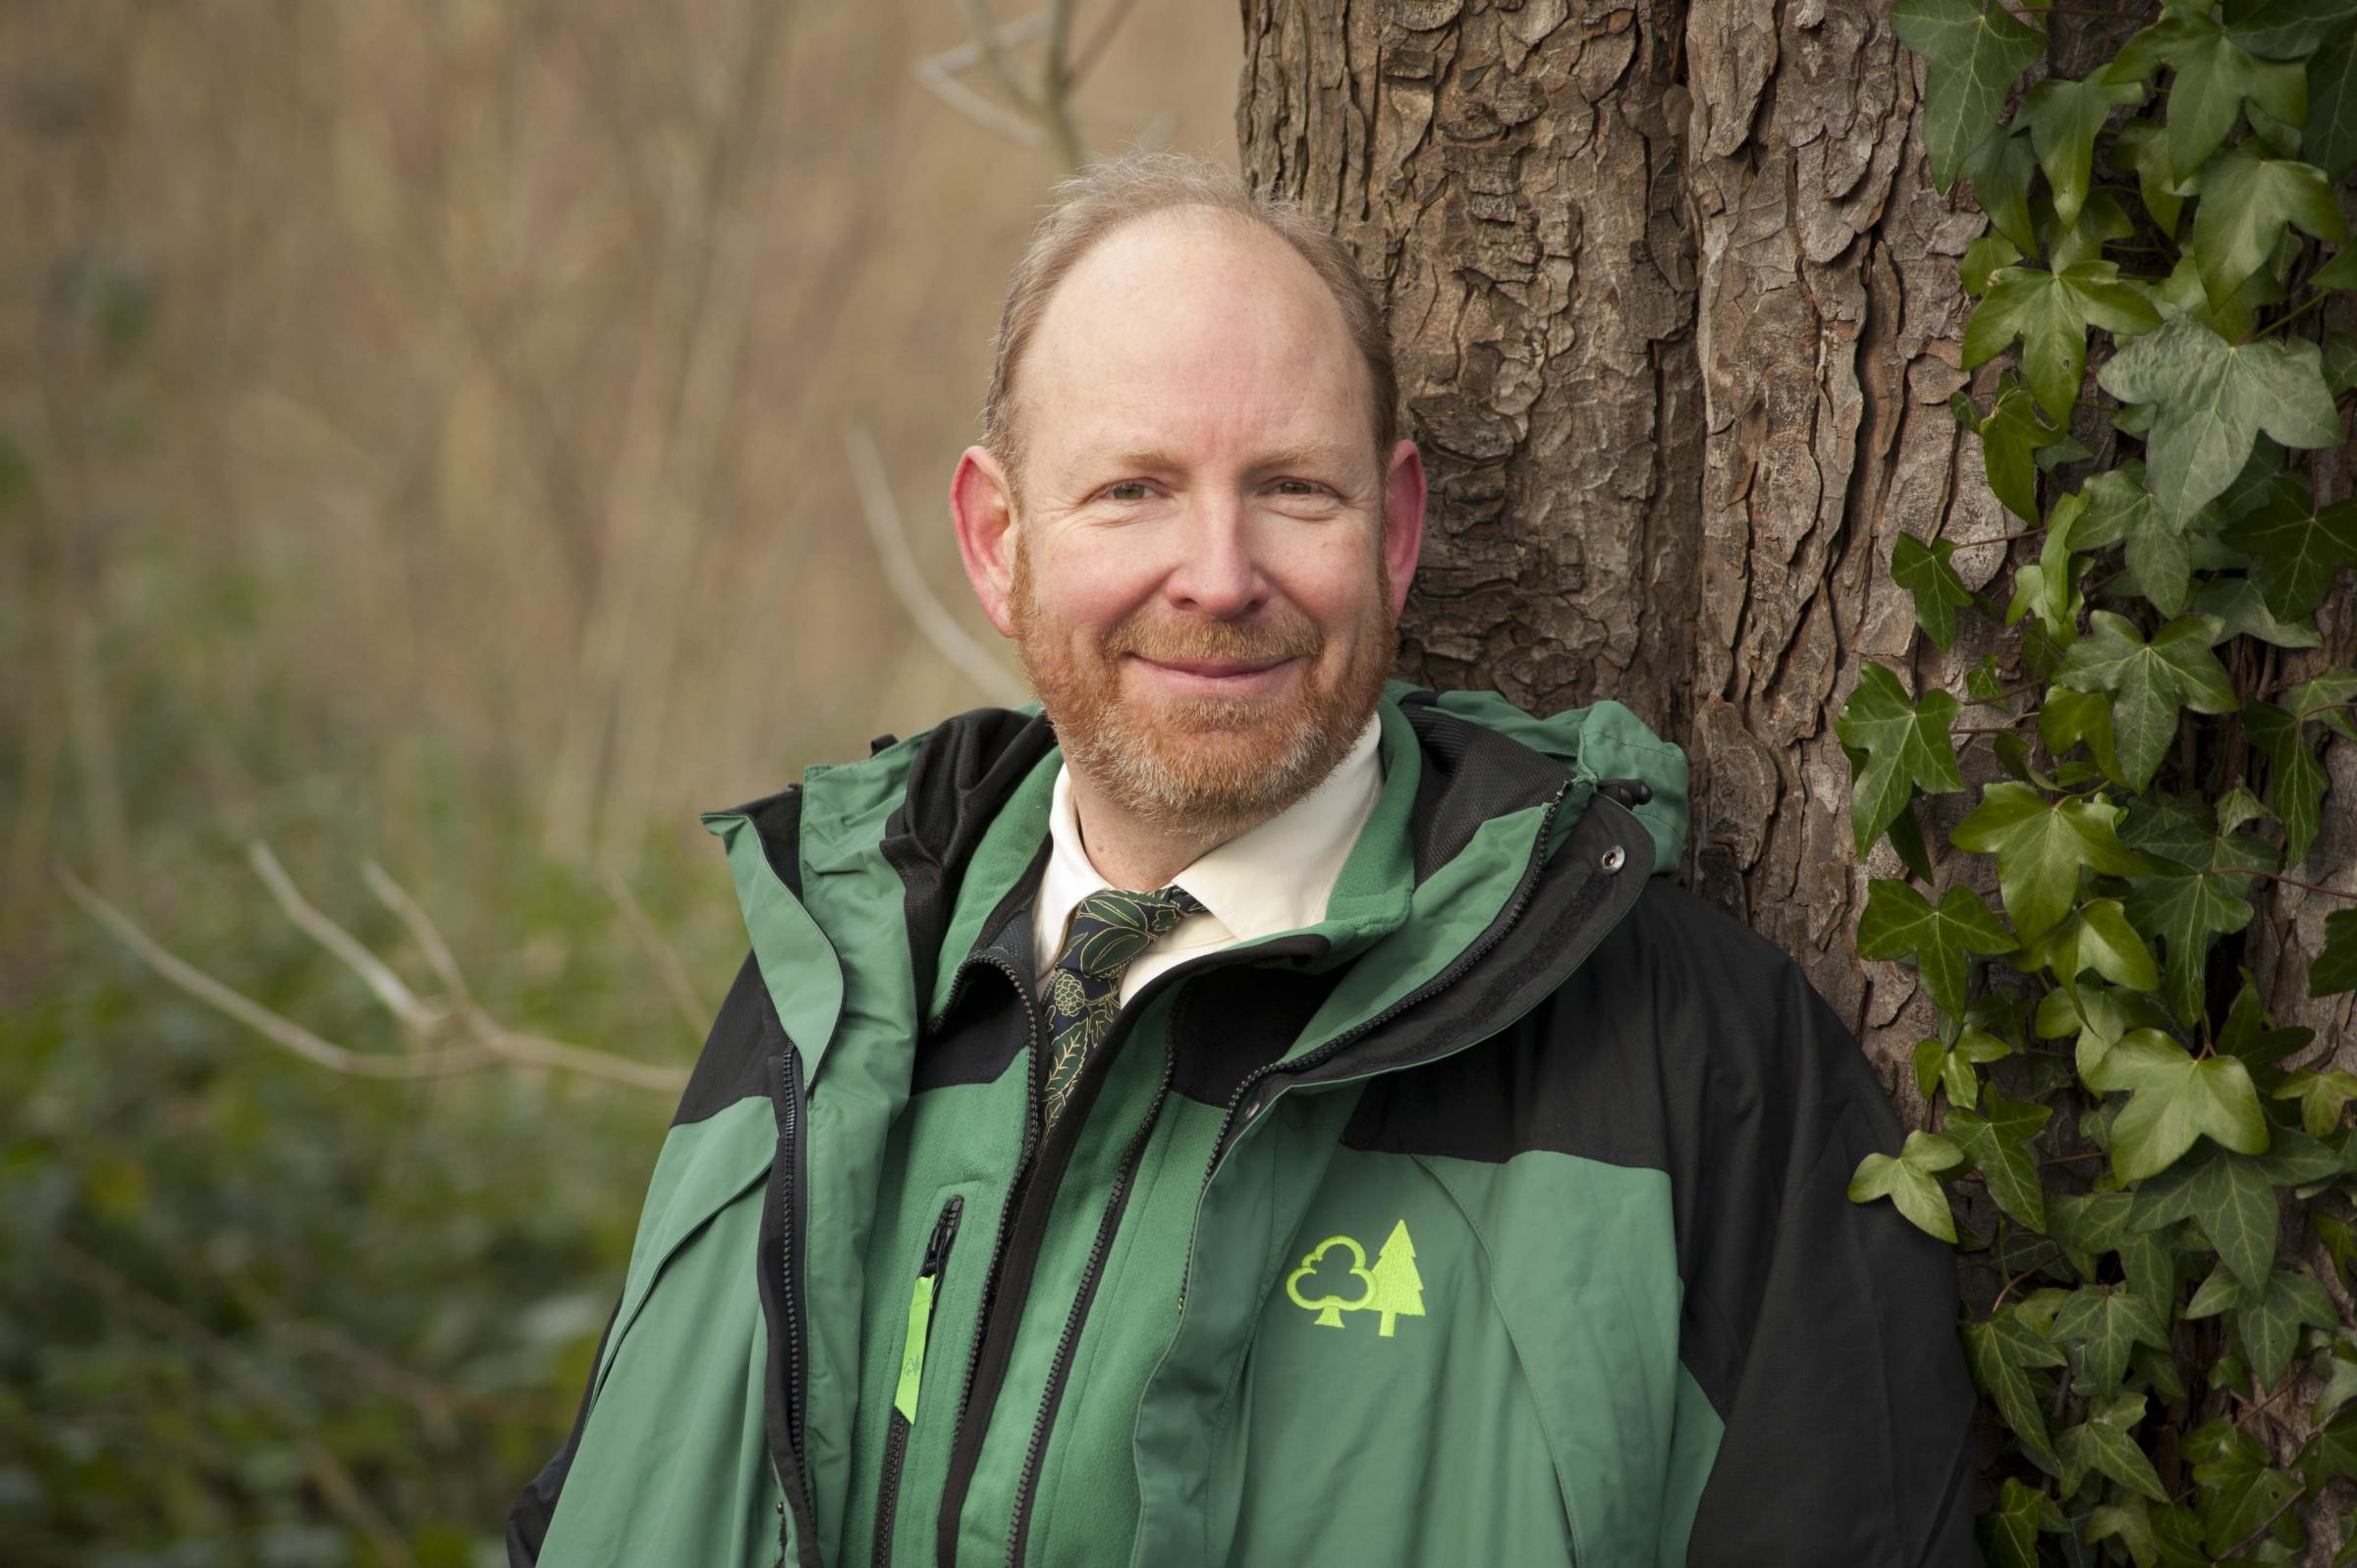 The Lucombe Oak will be planted at Westpoint by the Forestry Commission's chairman Sir Harry Studholme